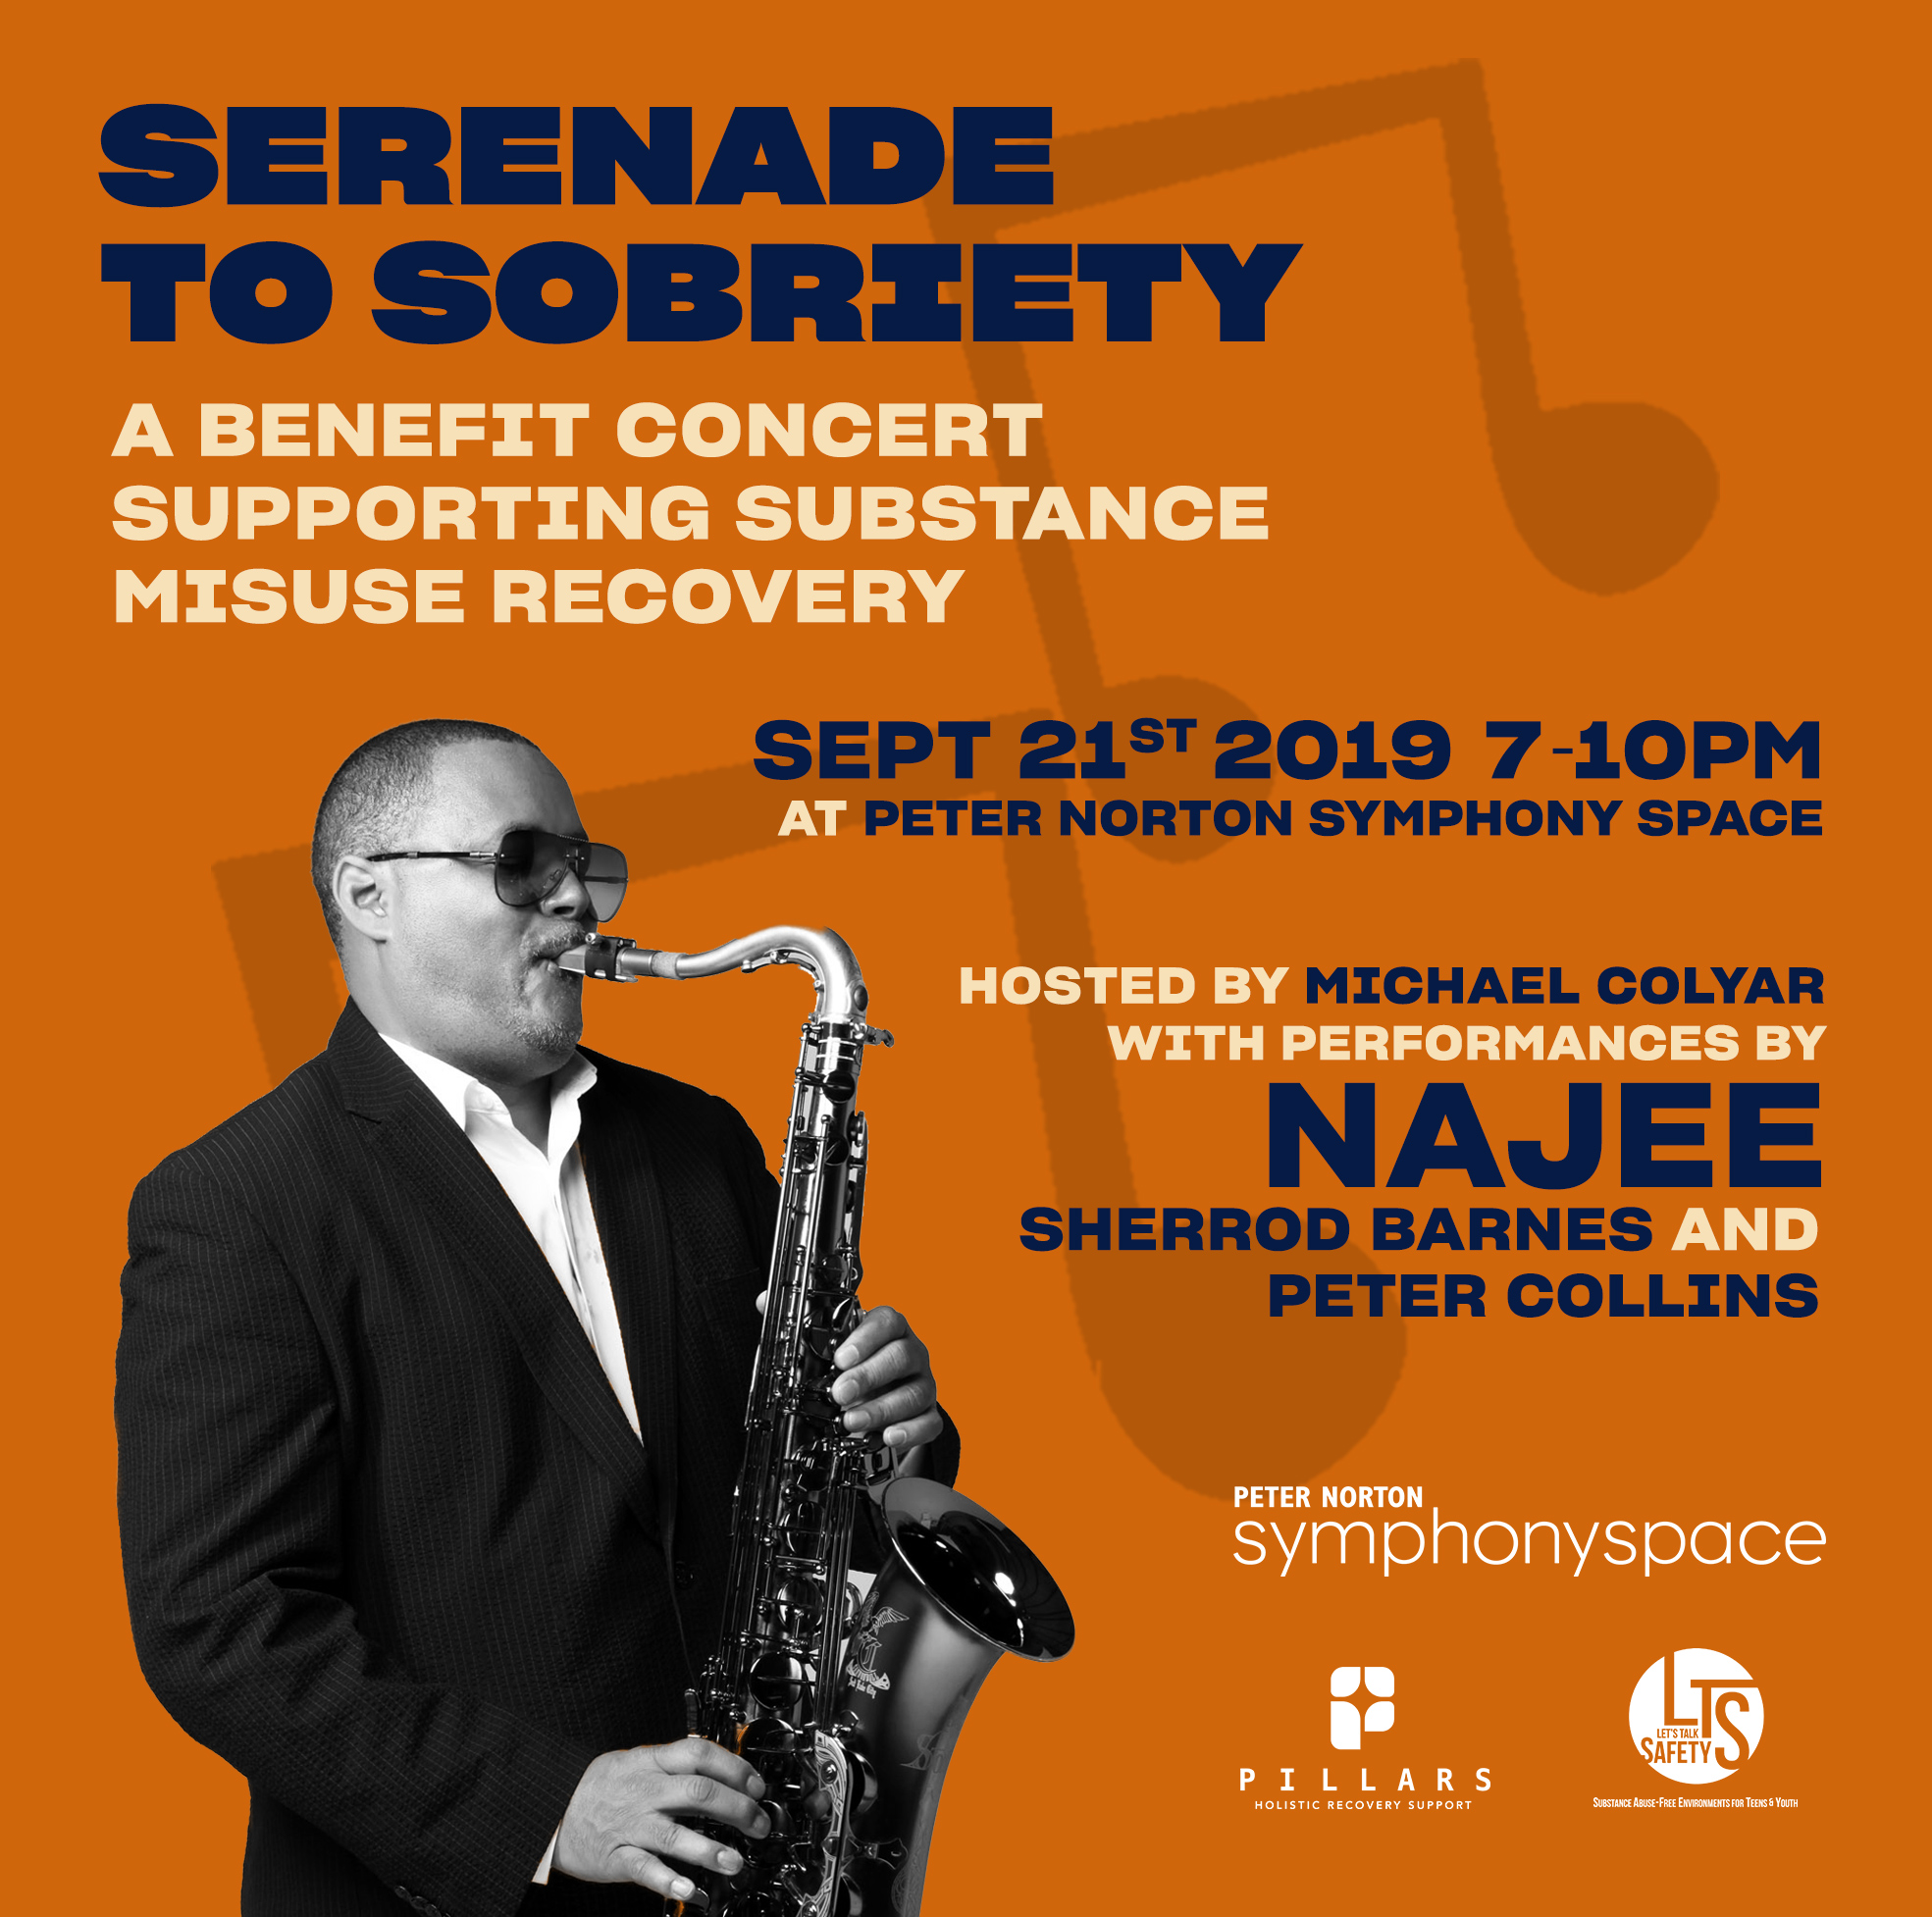 https://www.symphonyspace.org/events/vp-serenade-to-sobriety